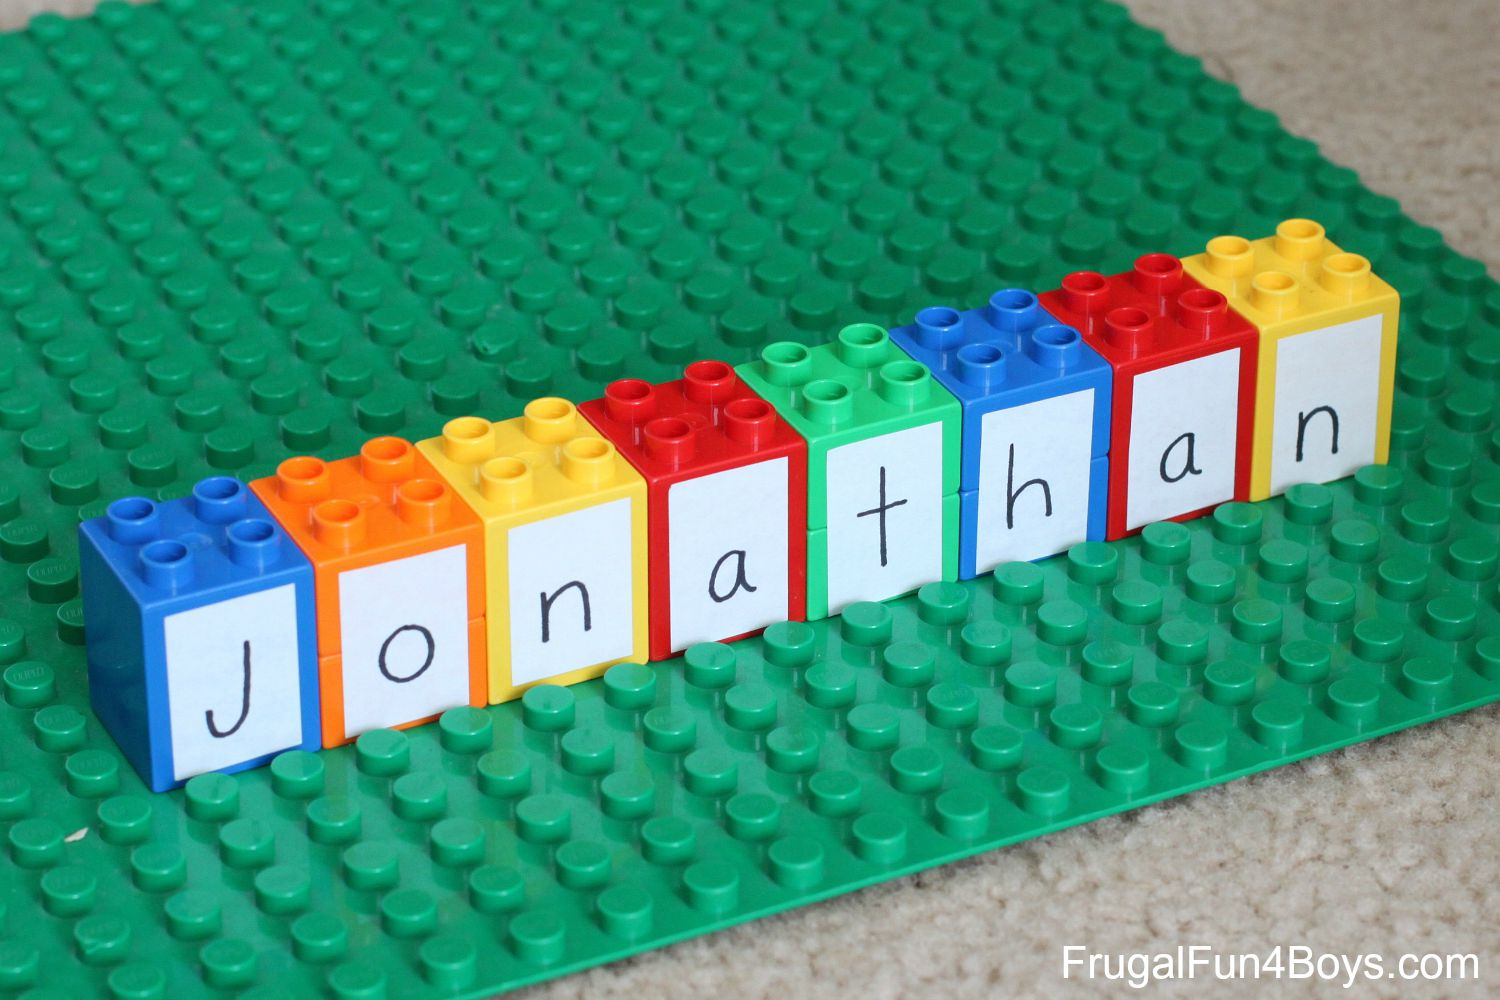 5 Ways Preschoolers Can Learn With Lego